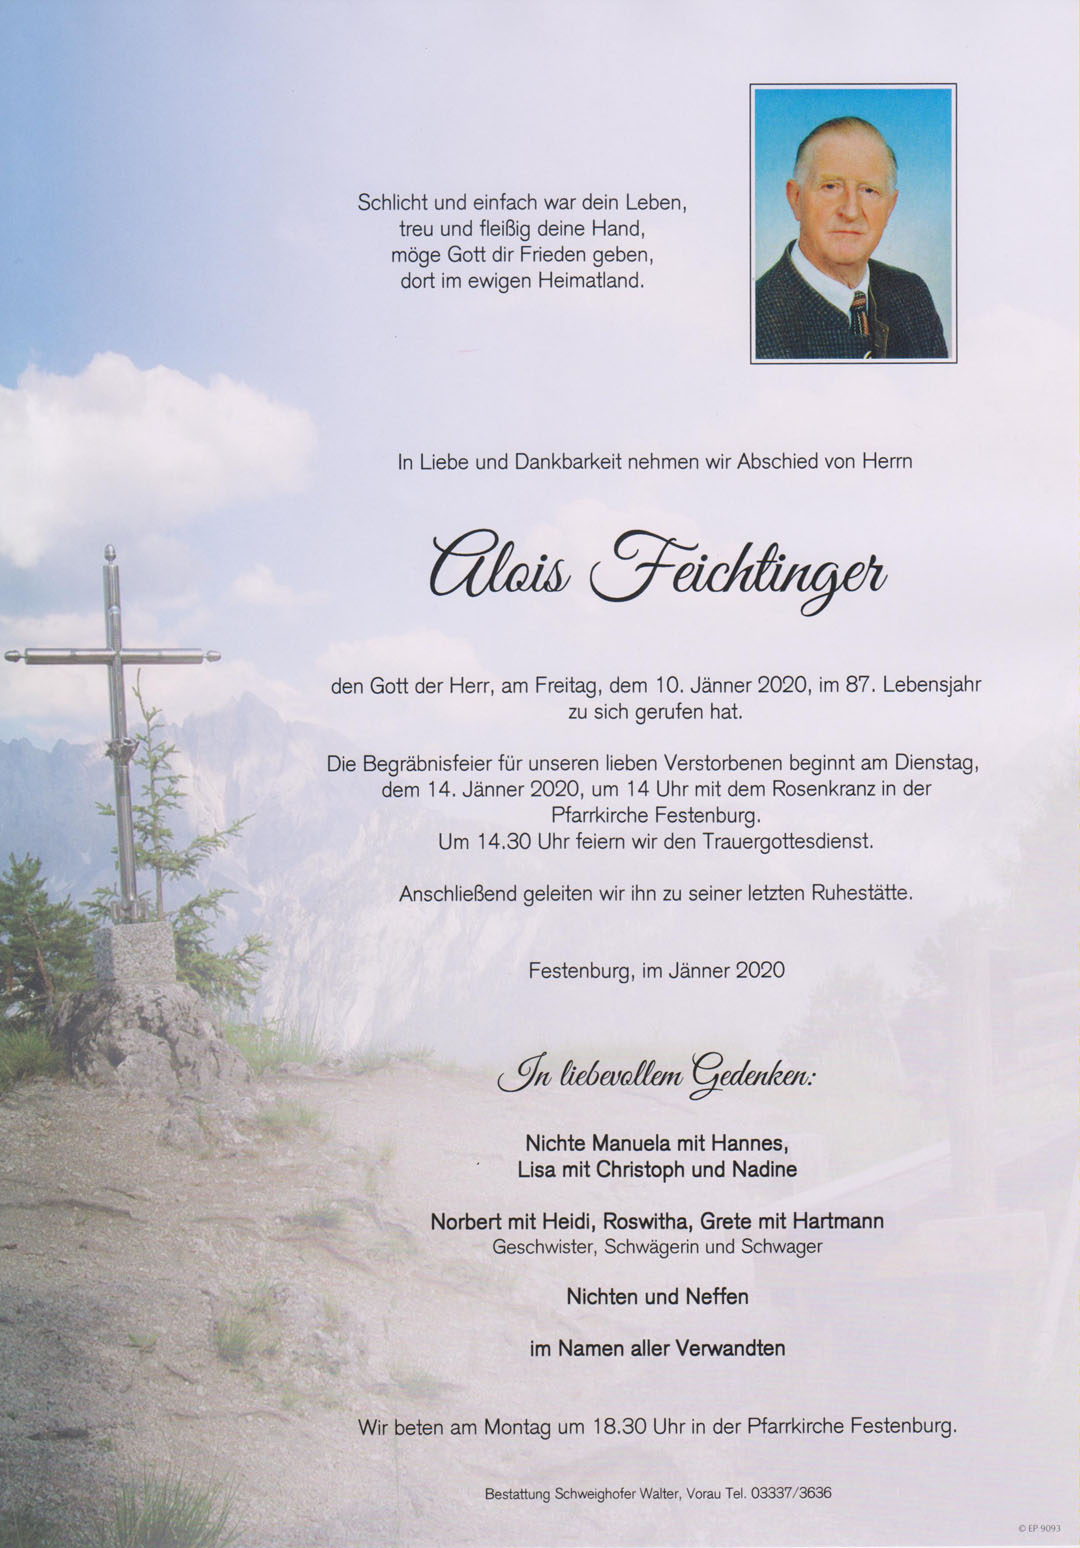 You are currently viewing Alois Feichtinger